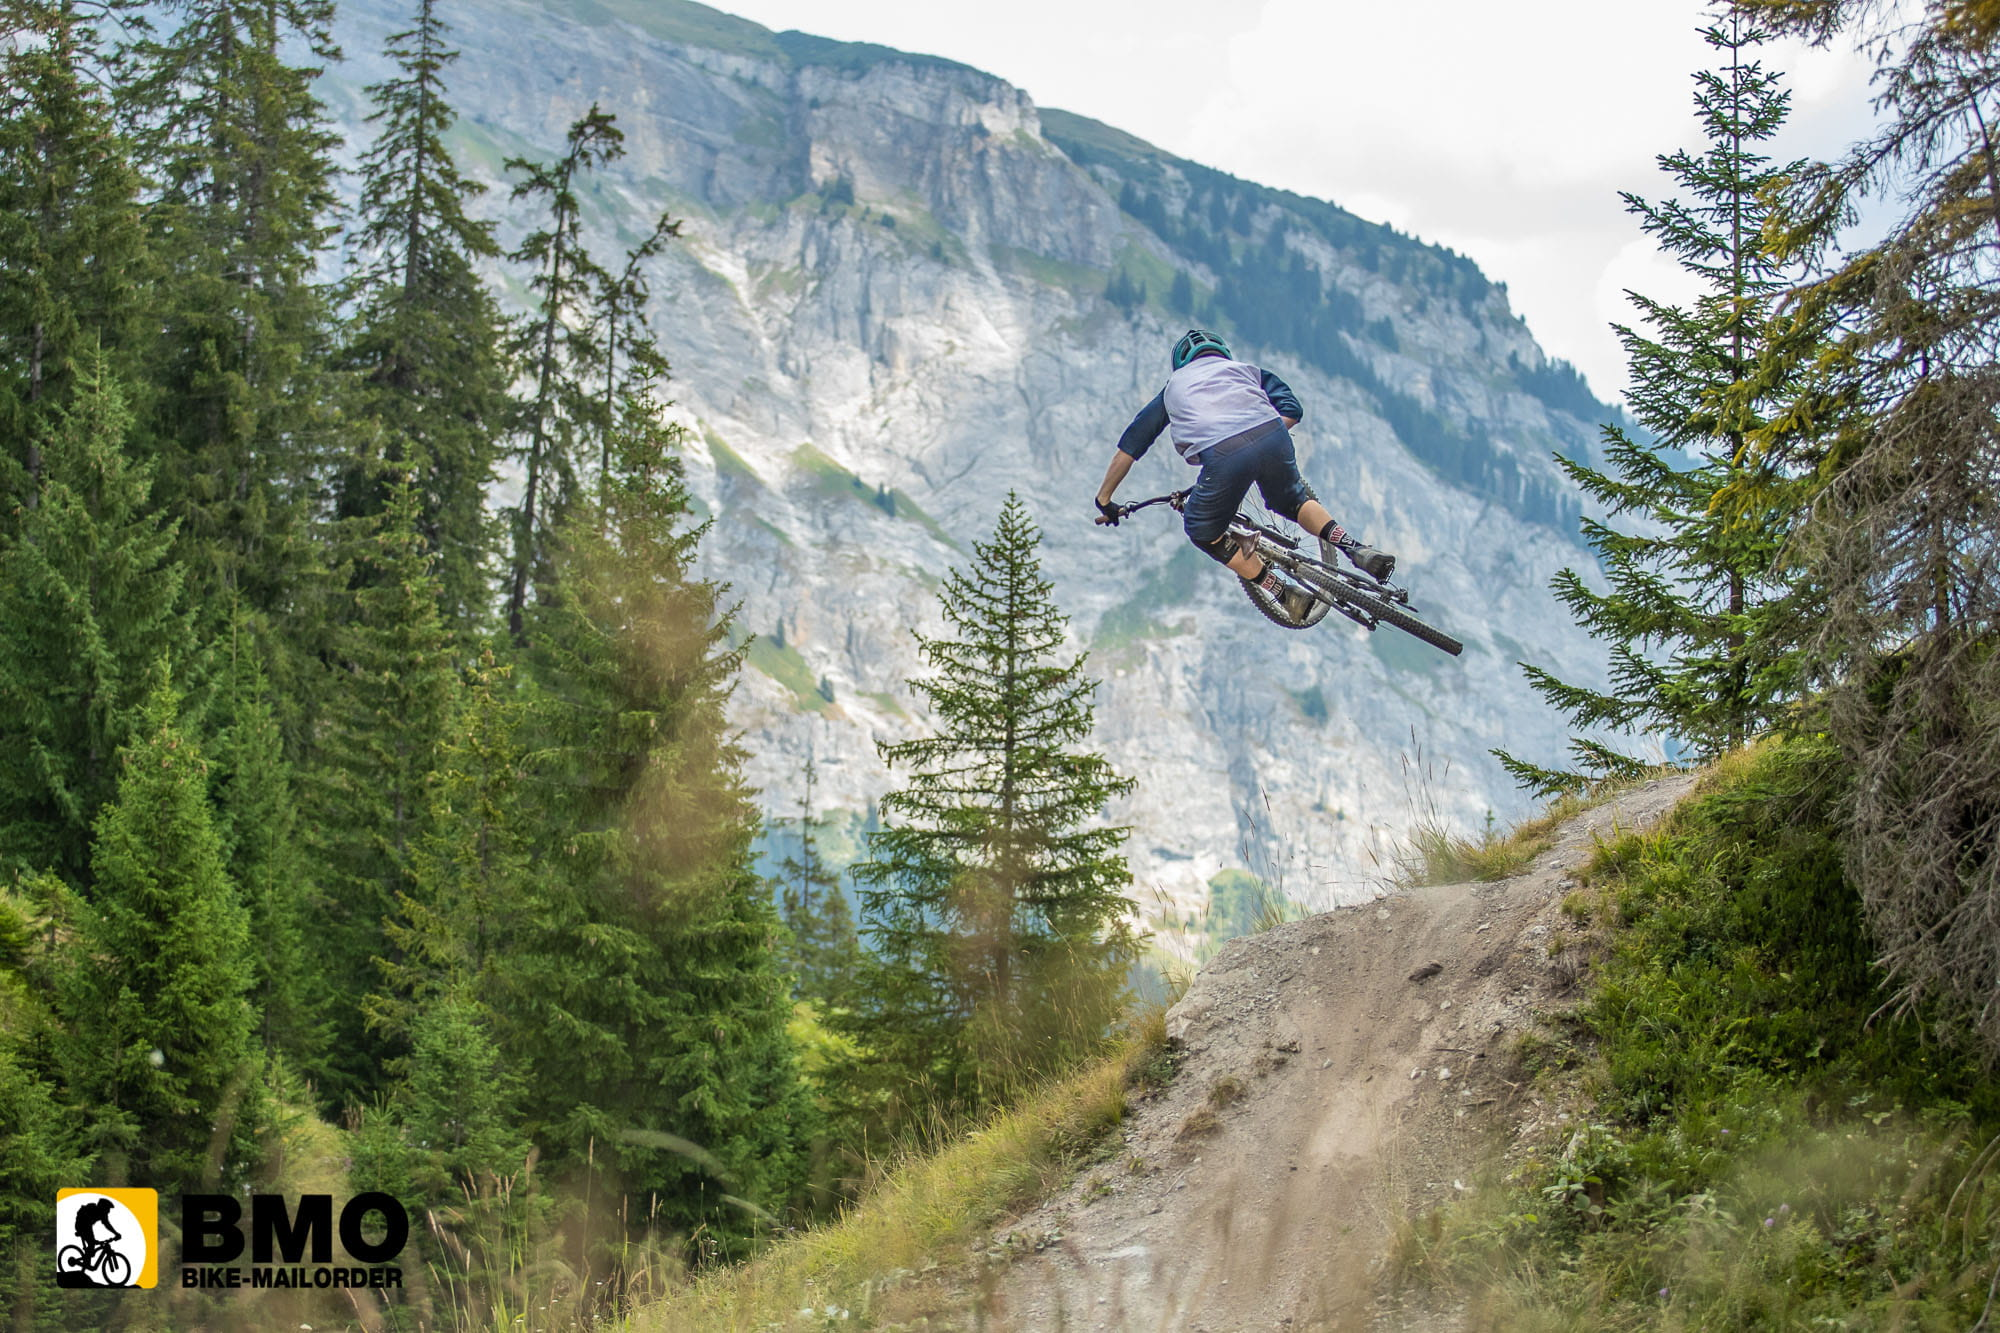 BMO_Home-of-Trails-Flims-Bike-Mailorder-11